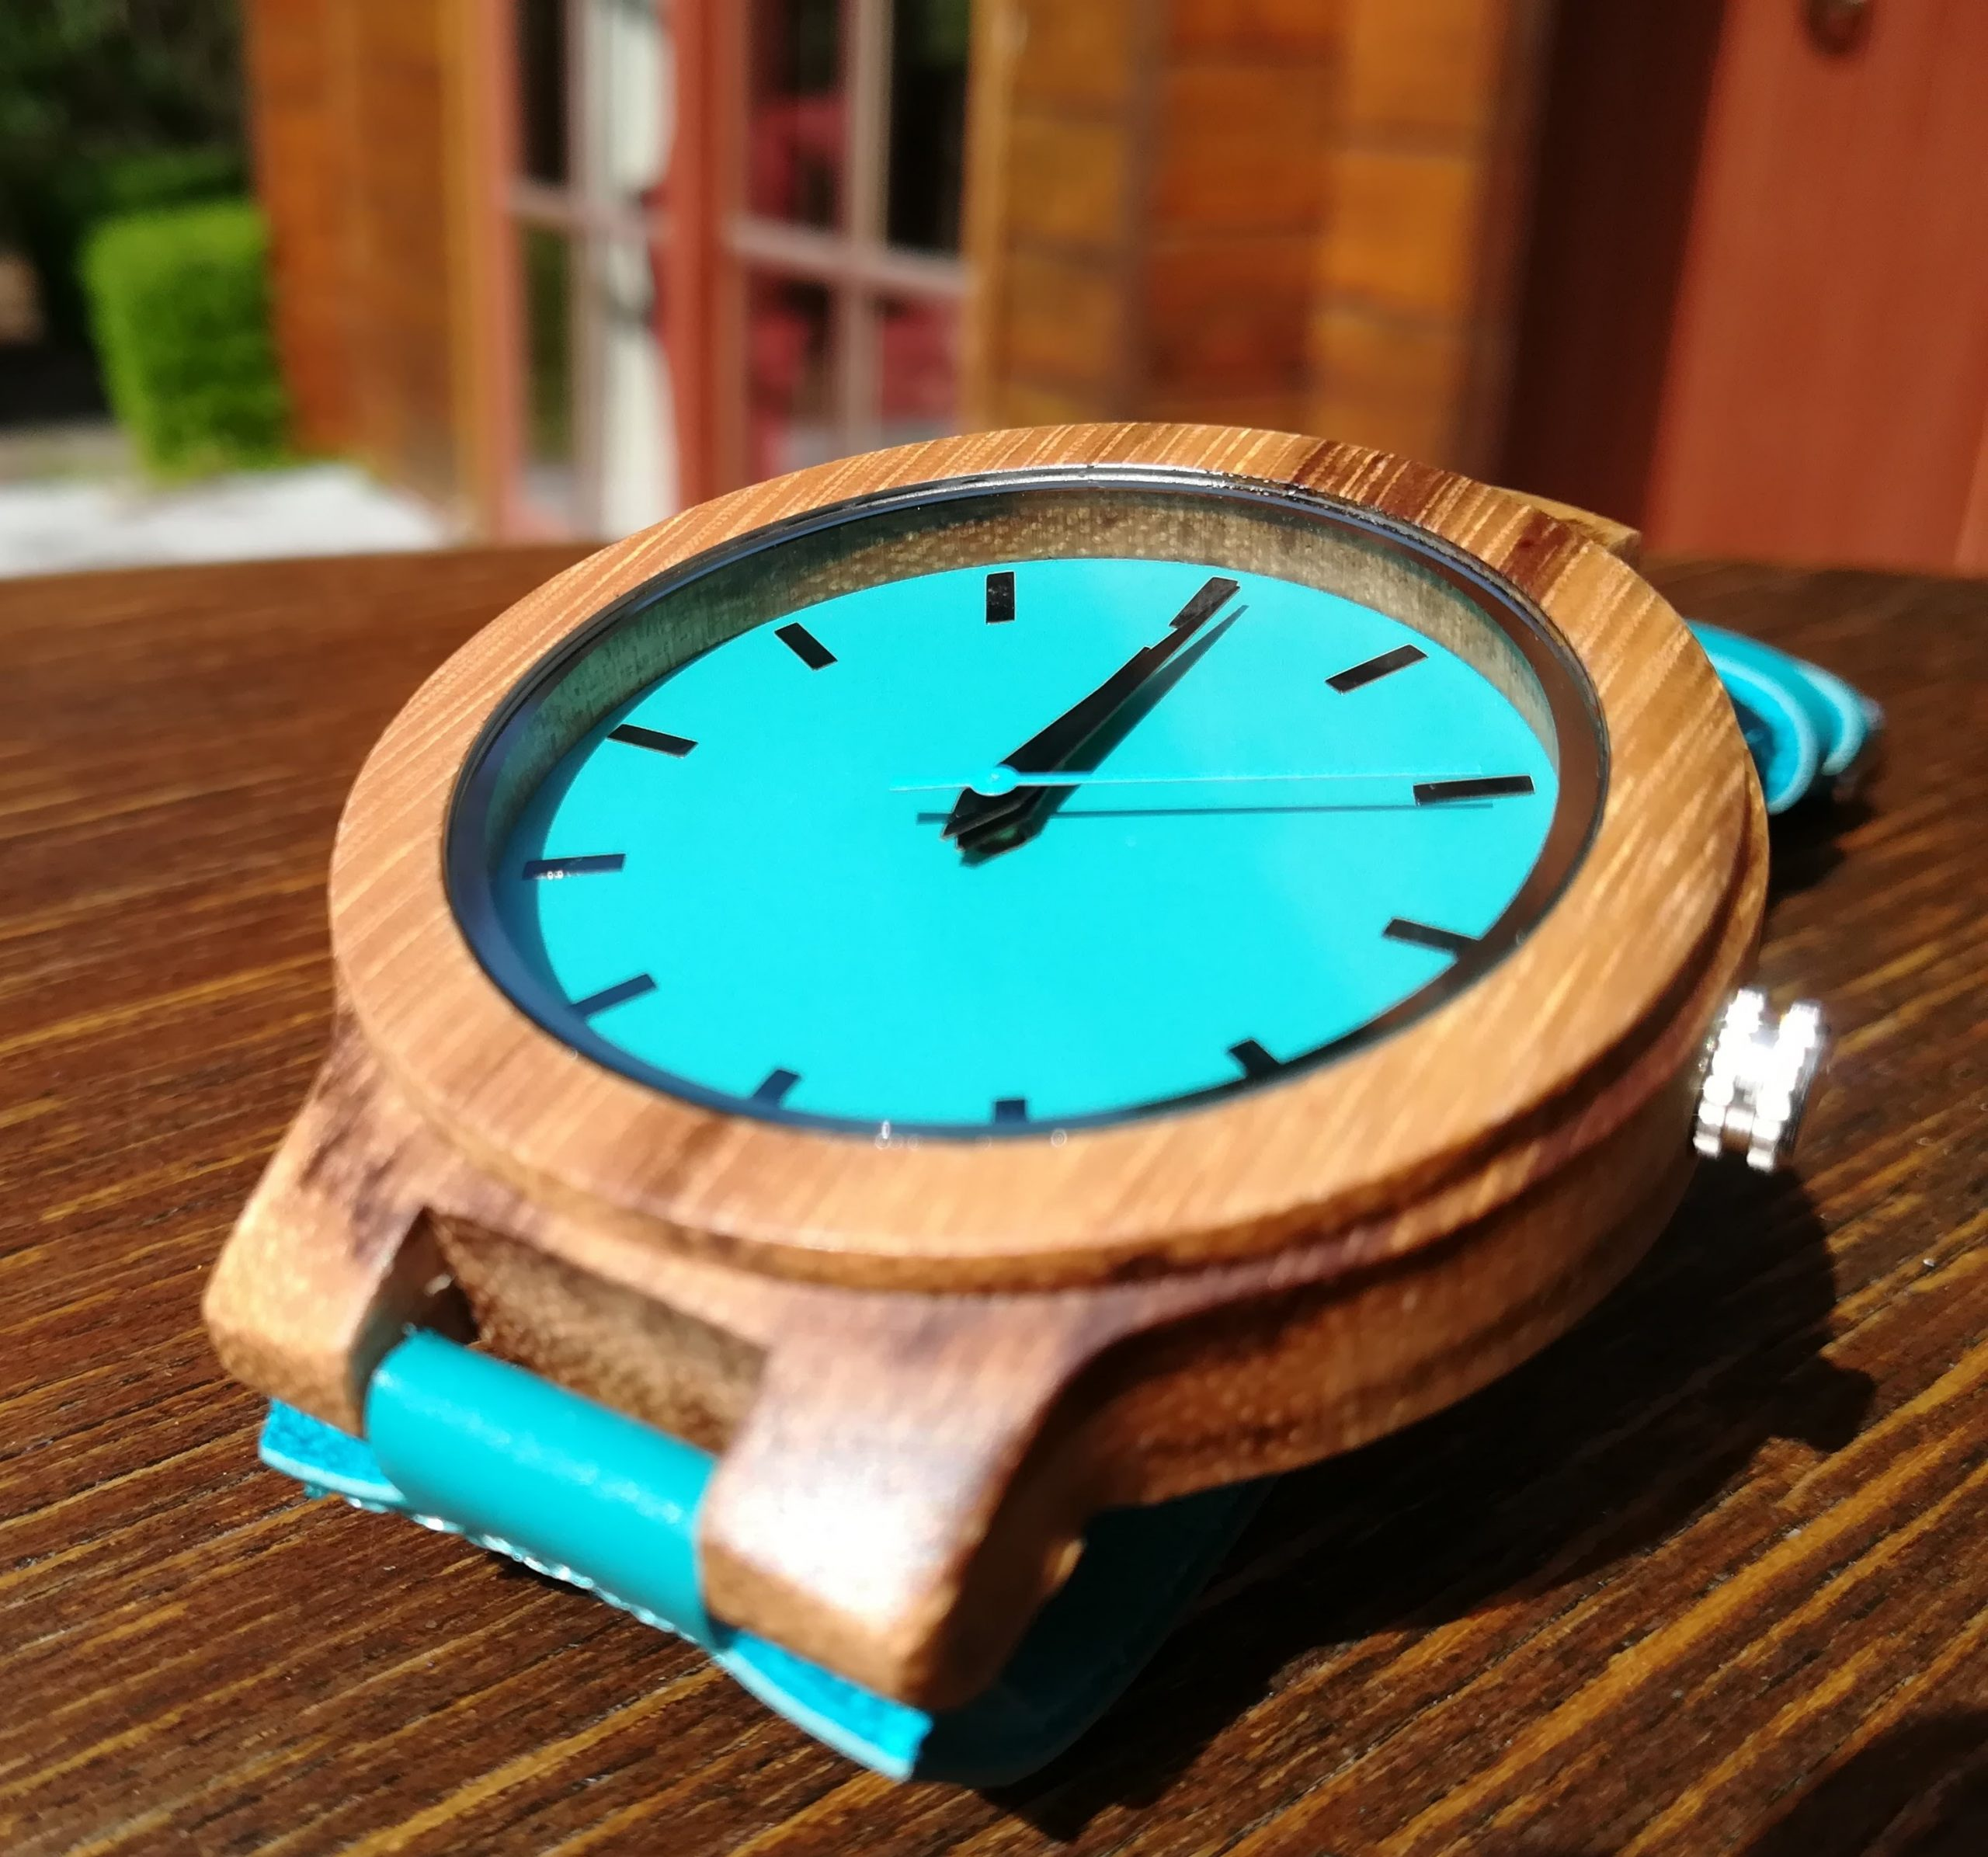 Bleu-wooden-watch-bamboo-bleu-eagle